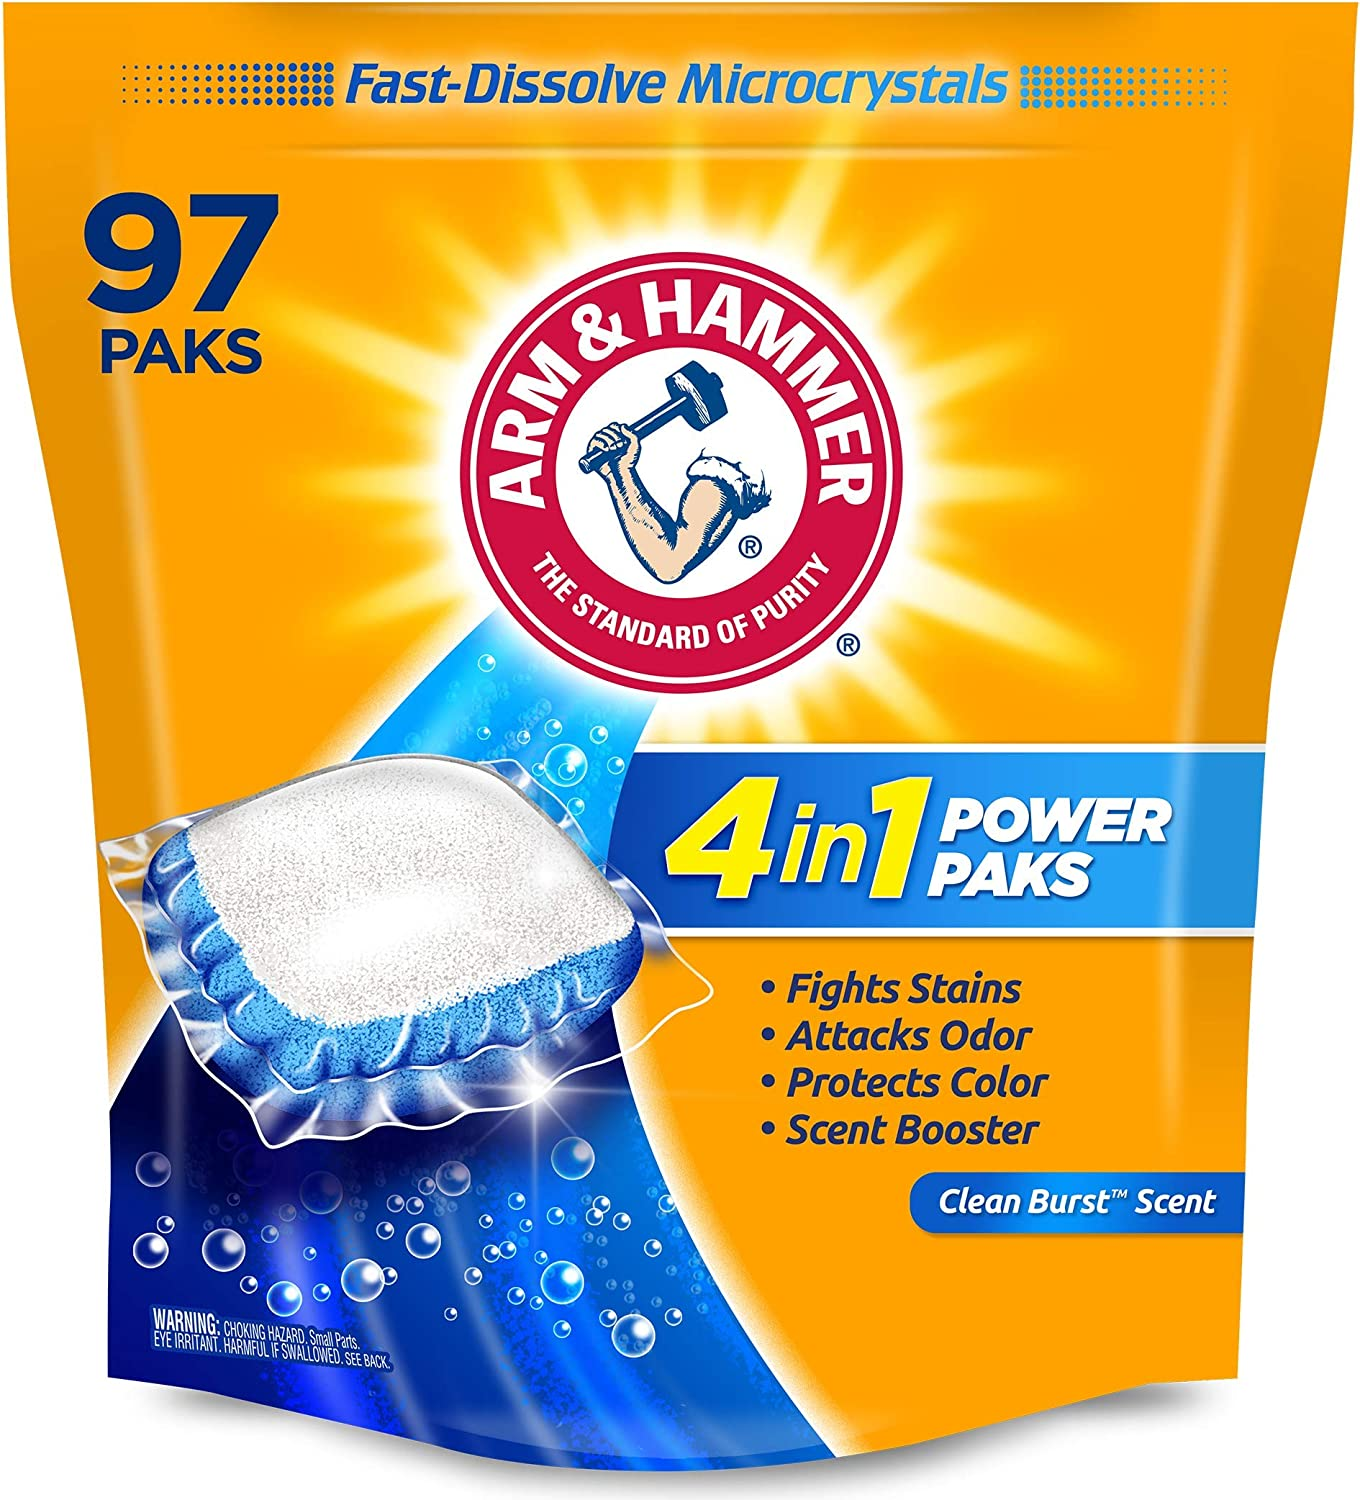 Arm & hammer 4-in-1 Laundry Detergent Power Paks, 97 Count (Packaging may vary): Health & Personal Care